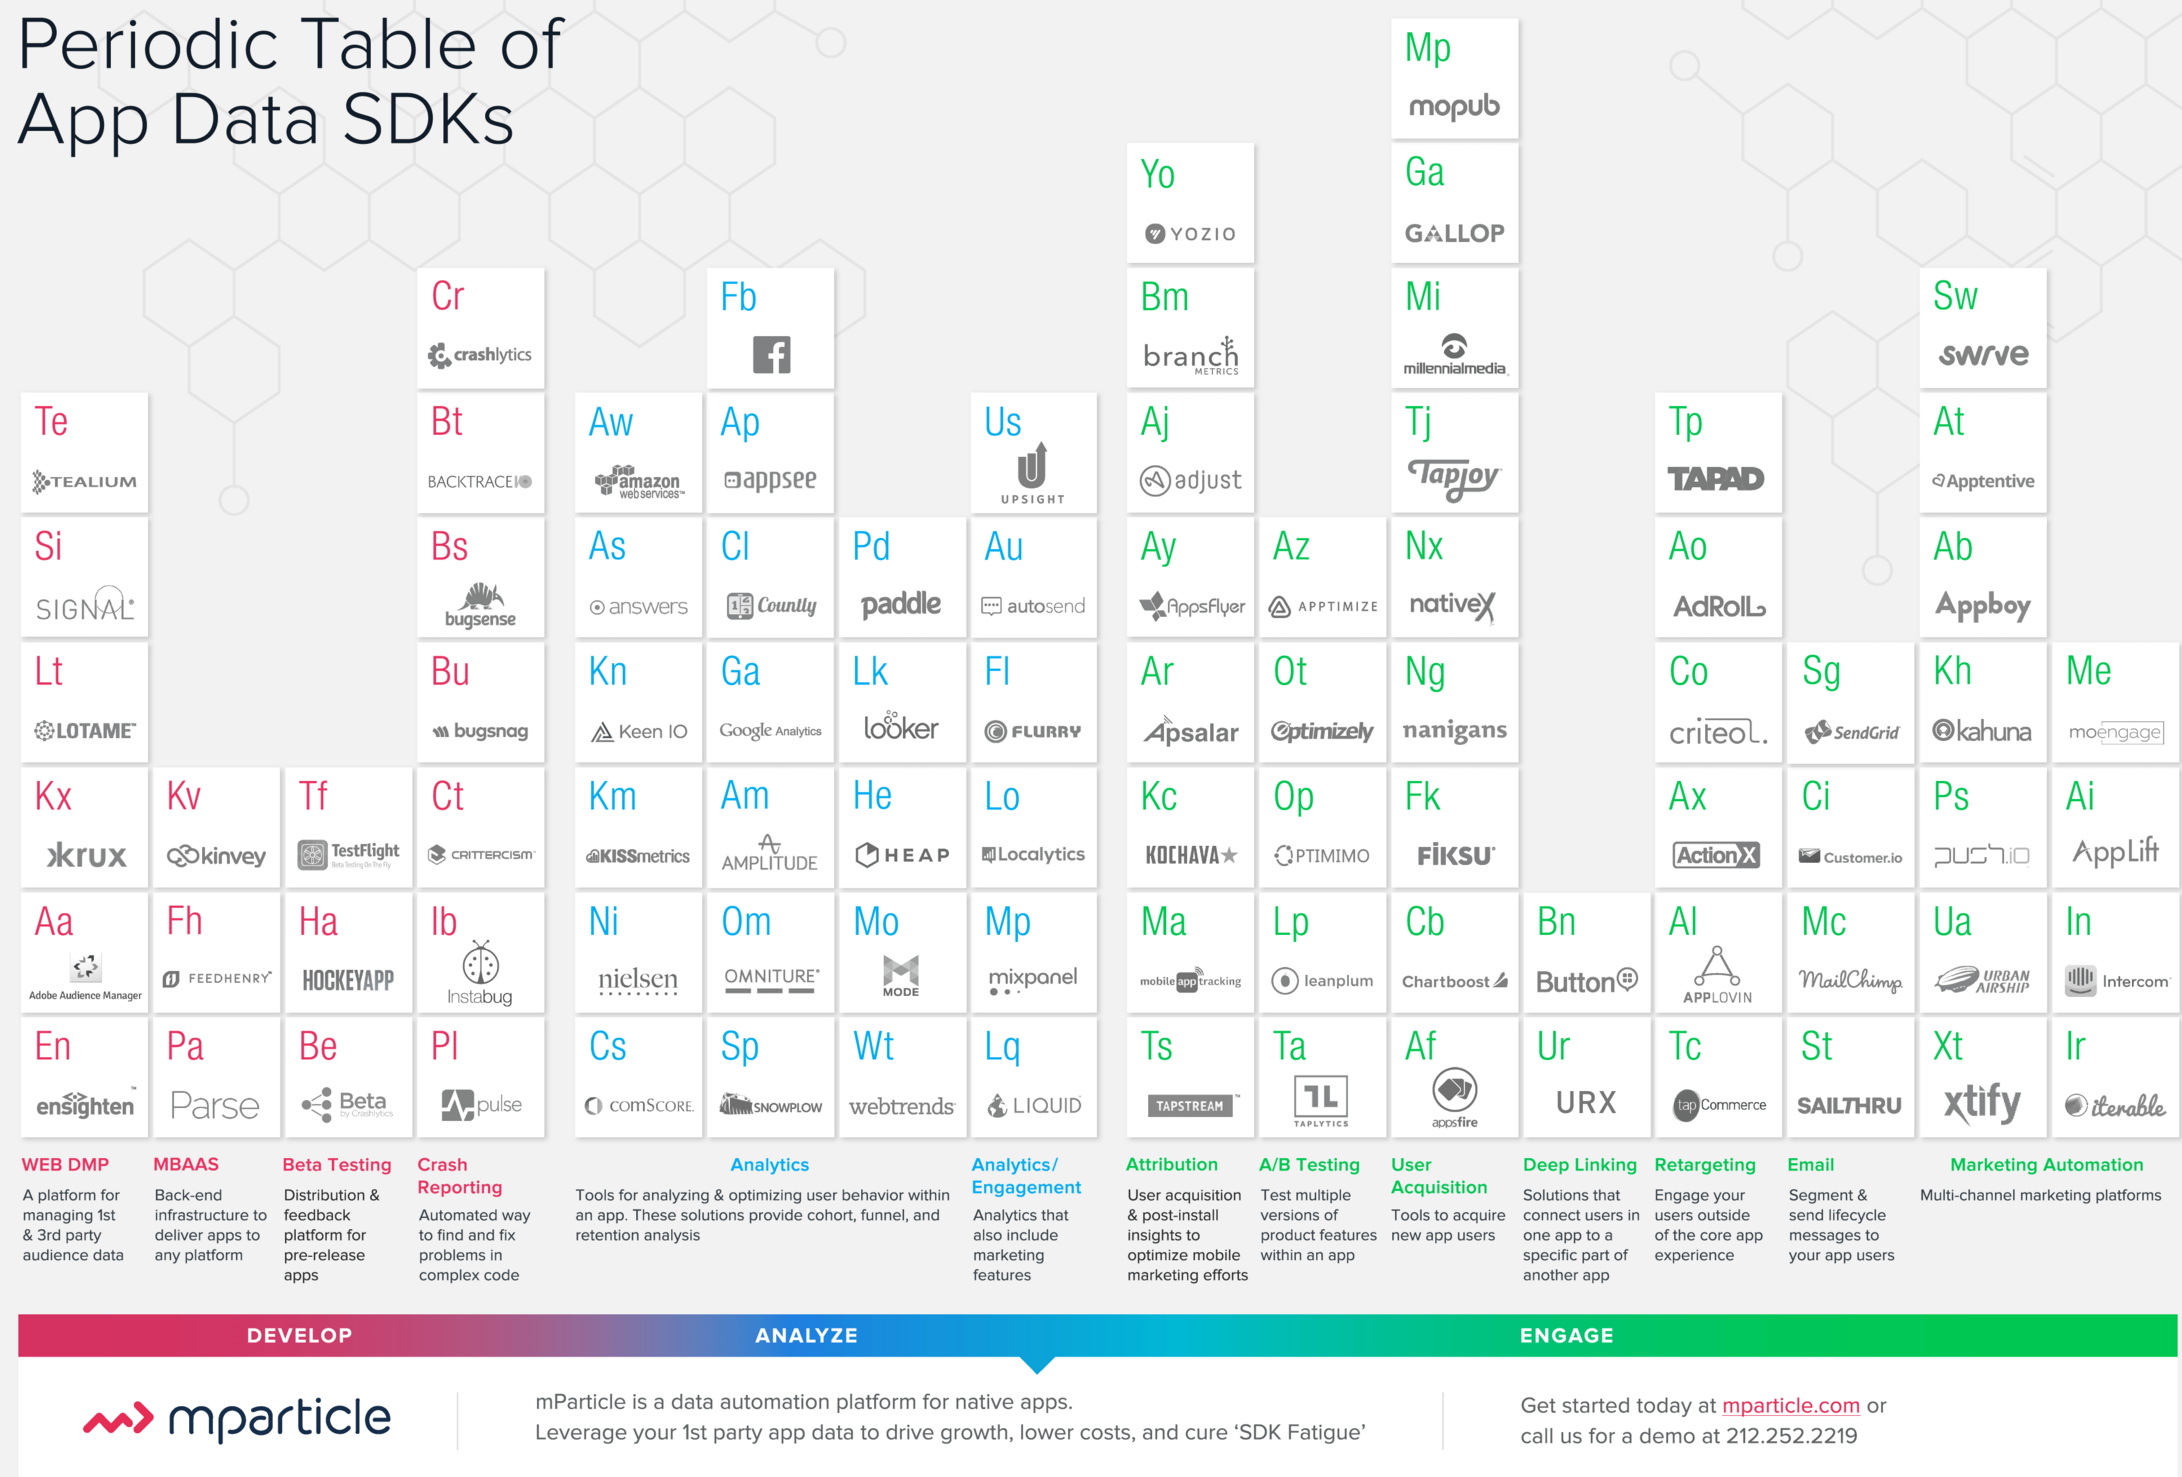 mparticle periodic table of SDKs